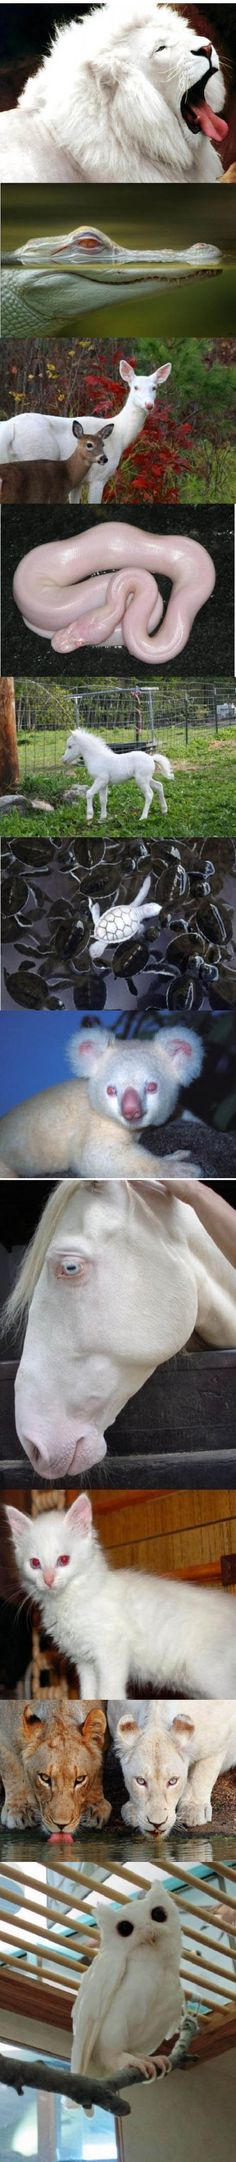 Just Some Albino Animals